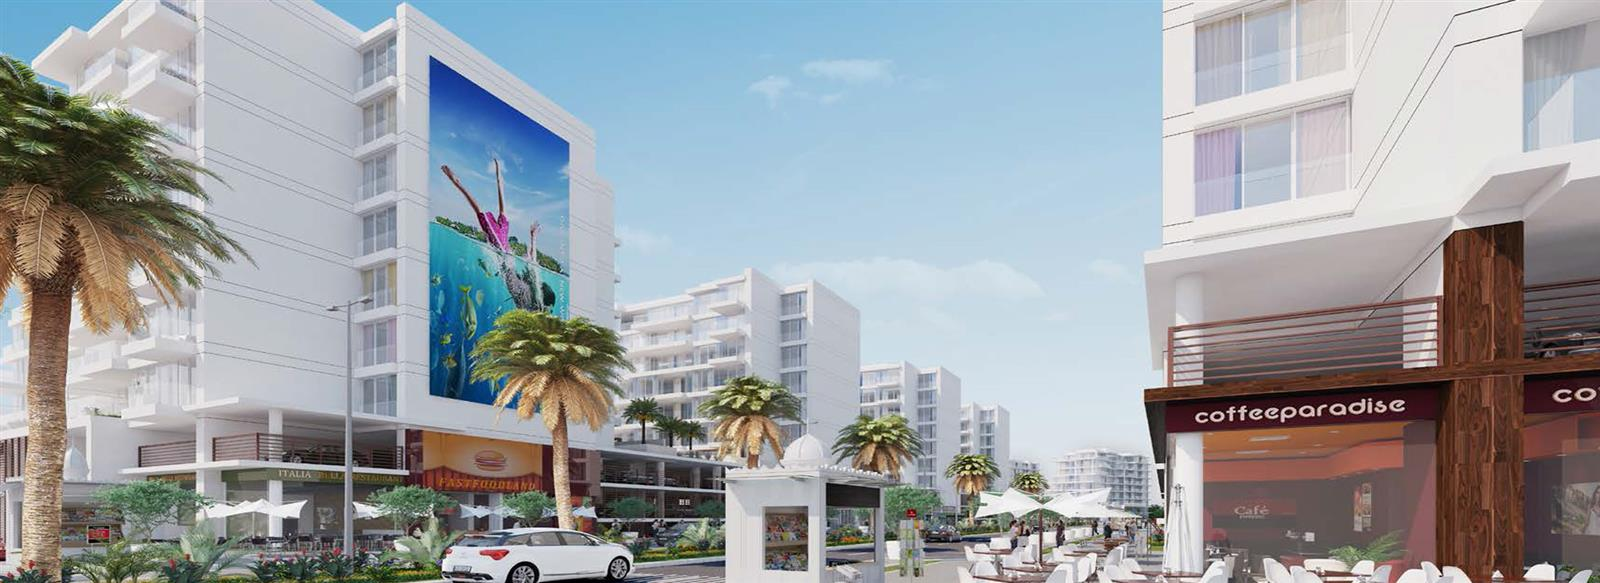 <div>Upto 7% expected ROI,</div><div>Luxury Studio, 1 &amp; 2 Bedroom Apartments,</div><div>Starting From AED 544,000</div>